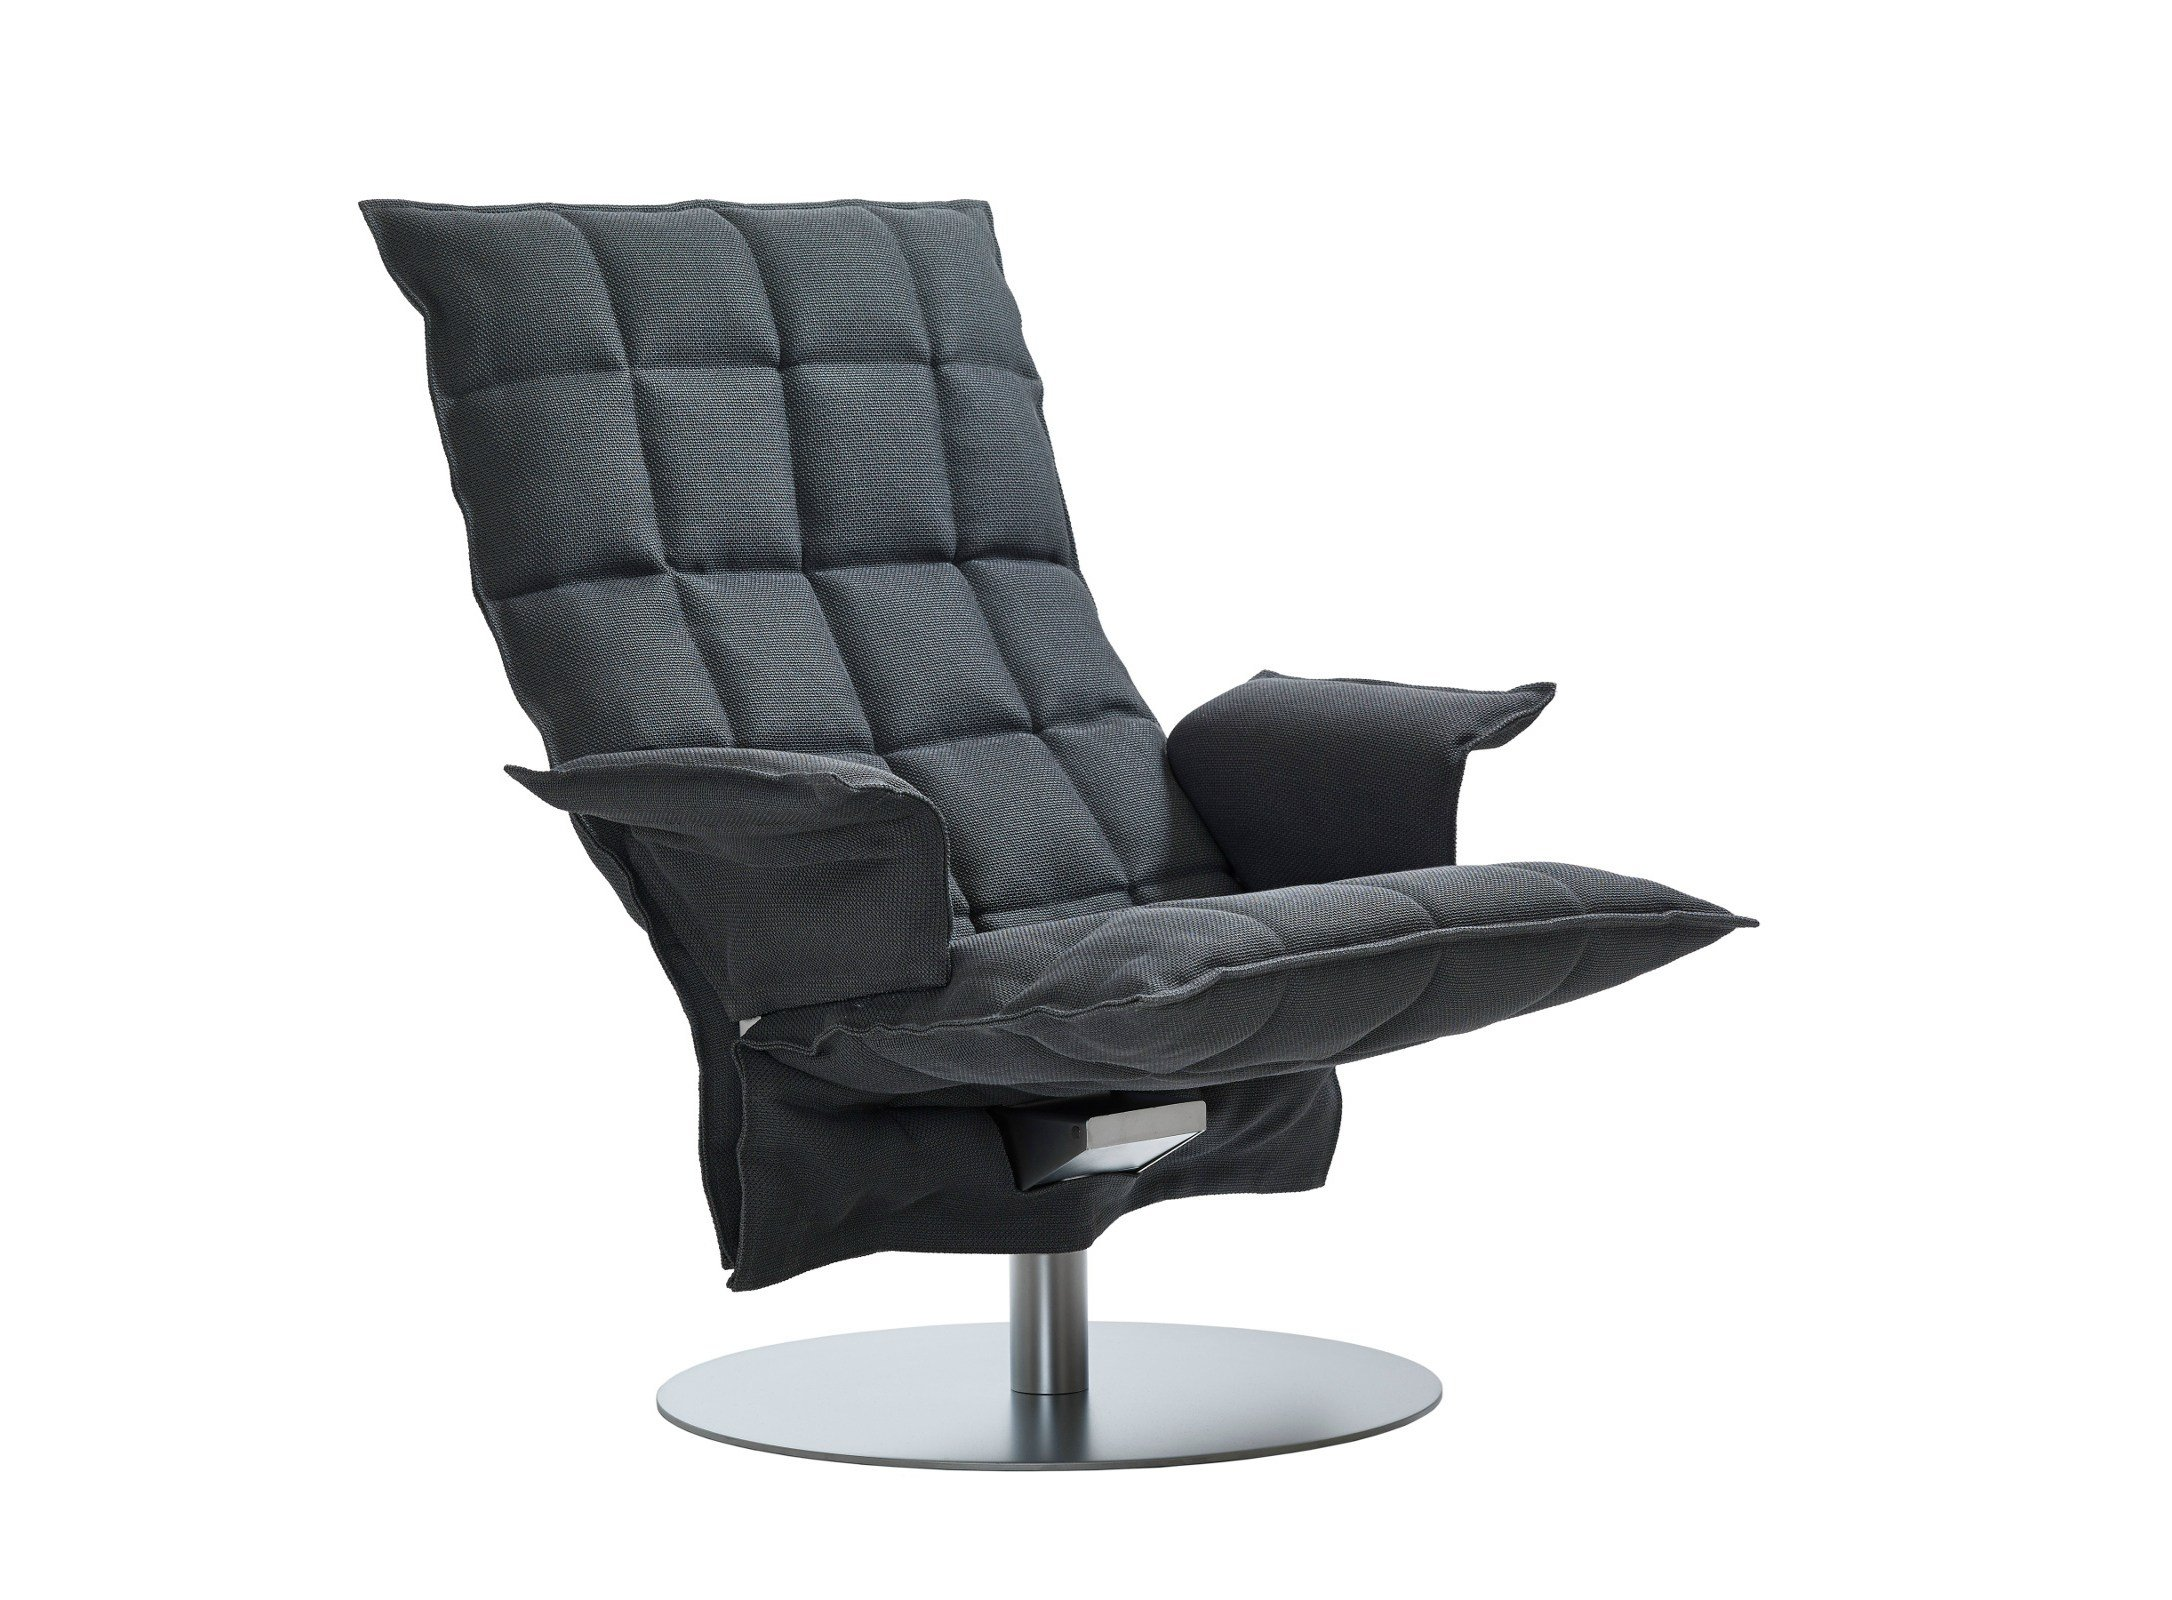 fauteuil pivotant en tissu swivel k chair by woodnotes. Black Bedroom Furniture Sets. Home Design Ideas